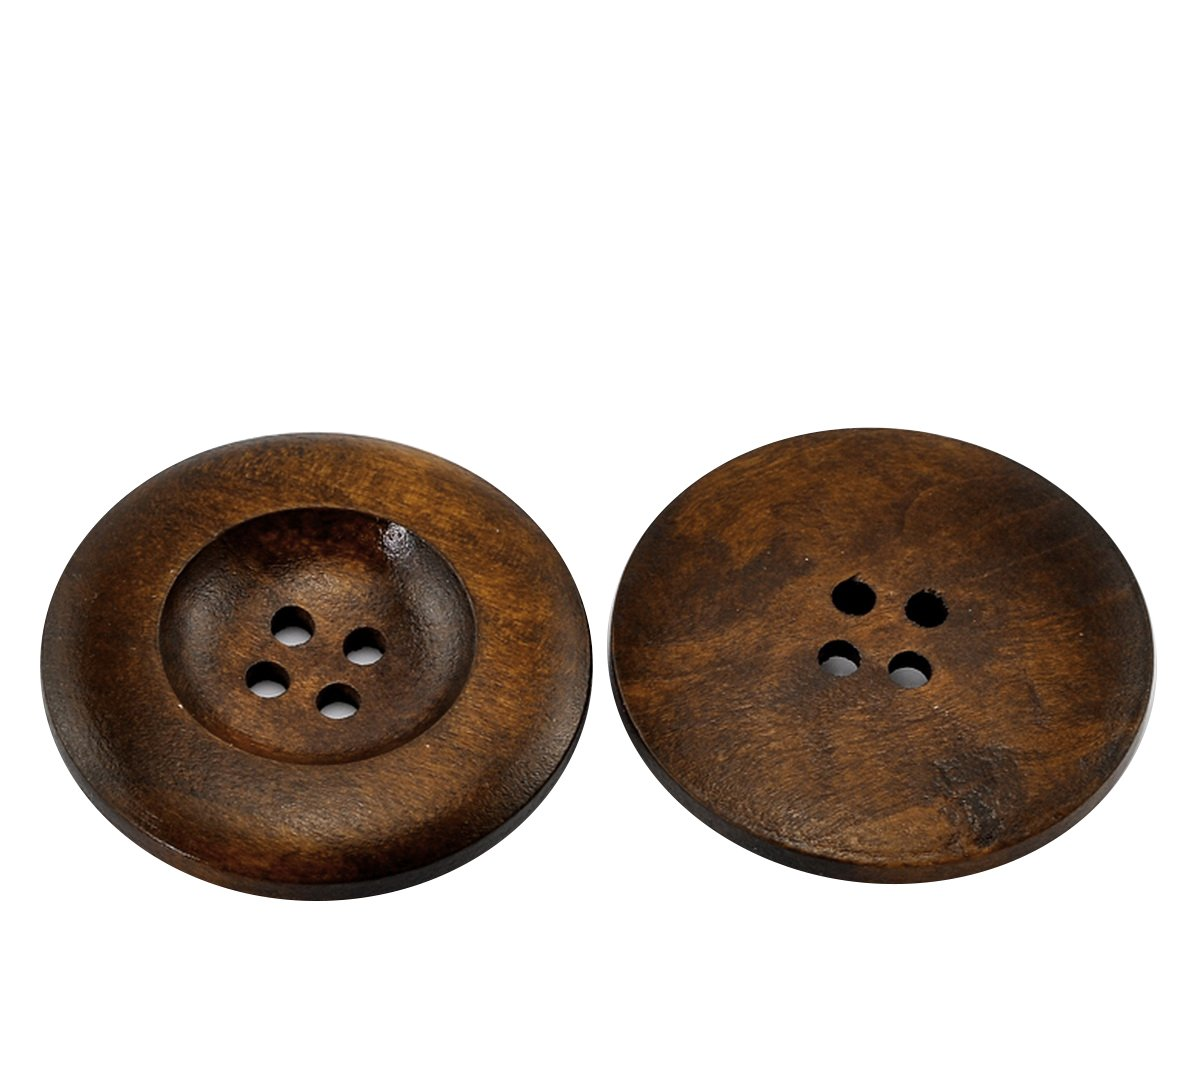 HOUSWEETY 20PCs Dark Coffee 4 Holes Round Wood Sewing Buttons 35mm(1 3/8) Dia. HOUSWEETYB21318